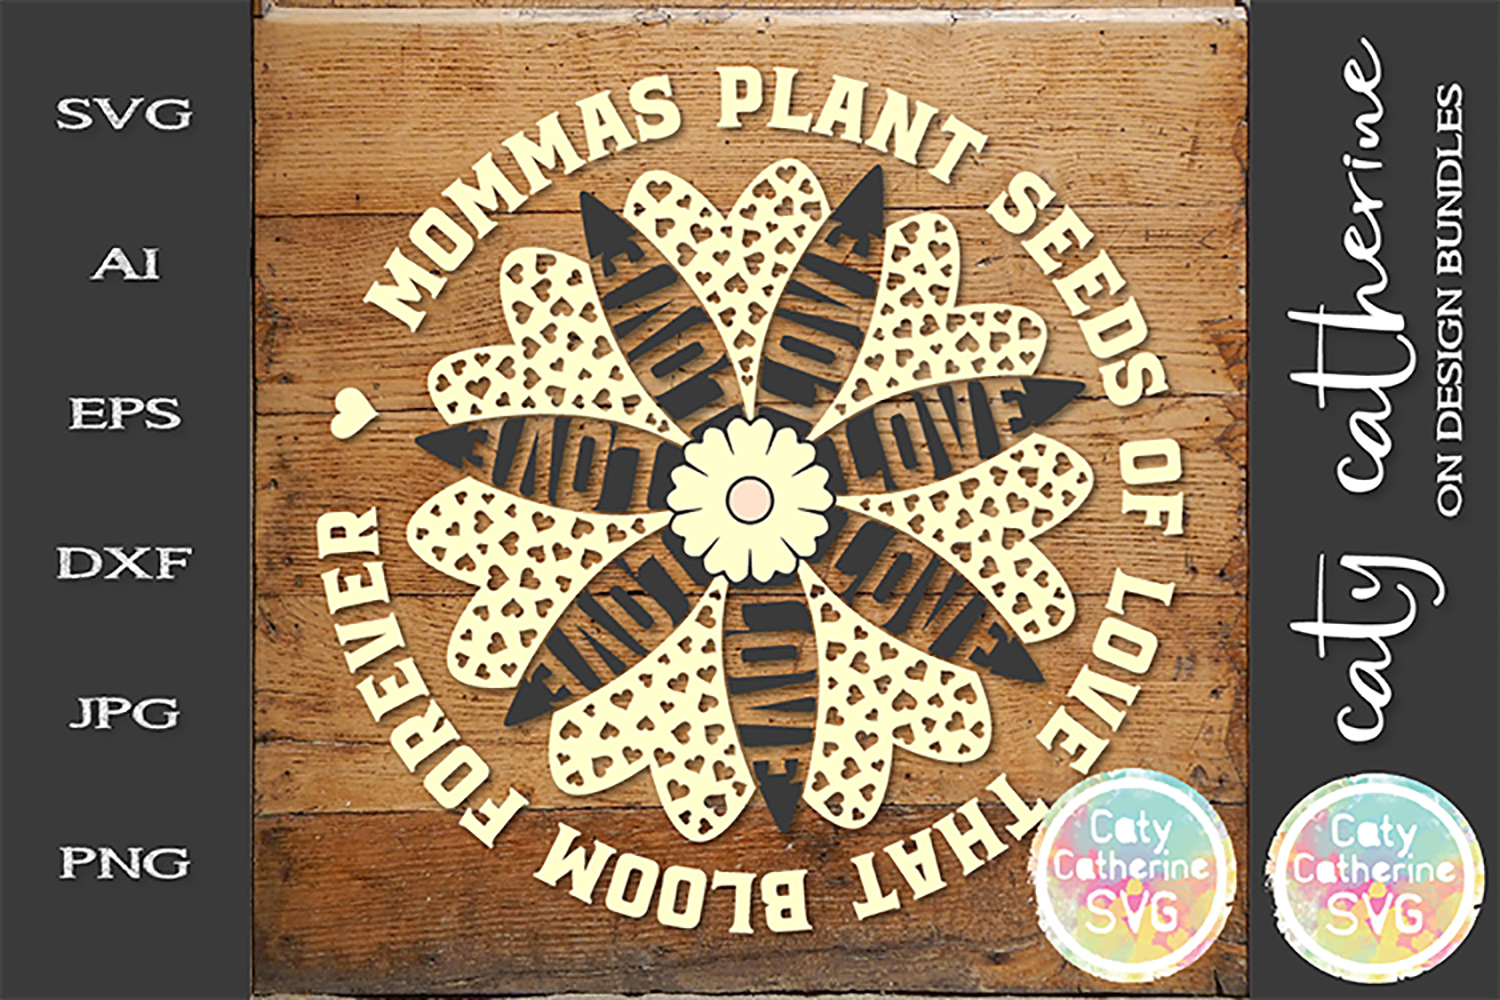 Mommas Plant Seeds Of Love That Bloom Forever SVG Cut example image 1